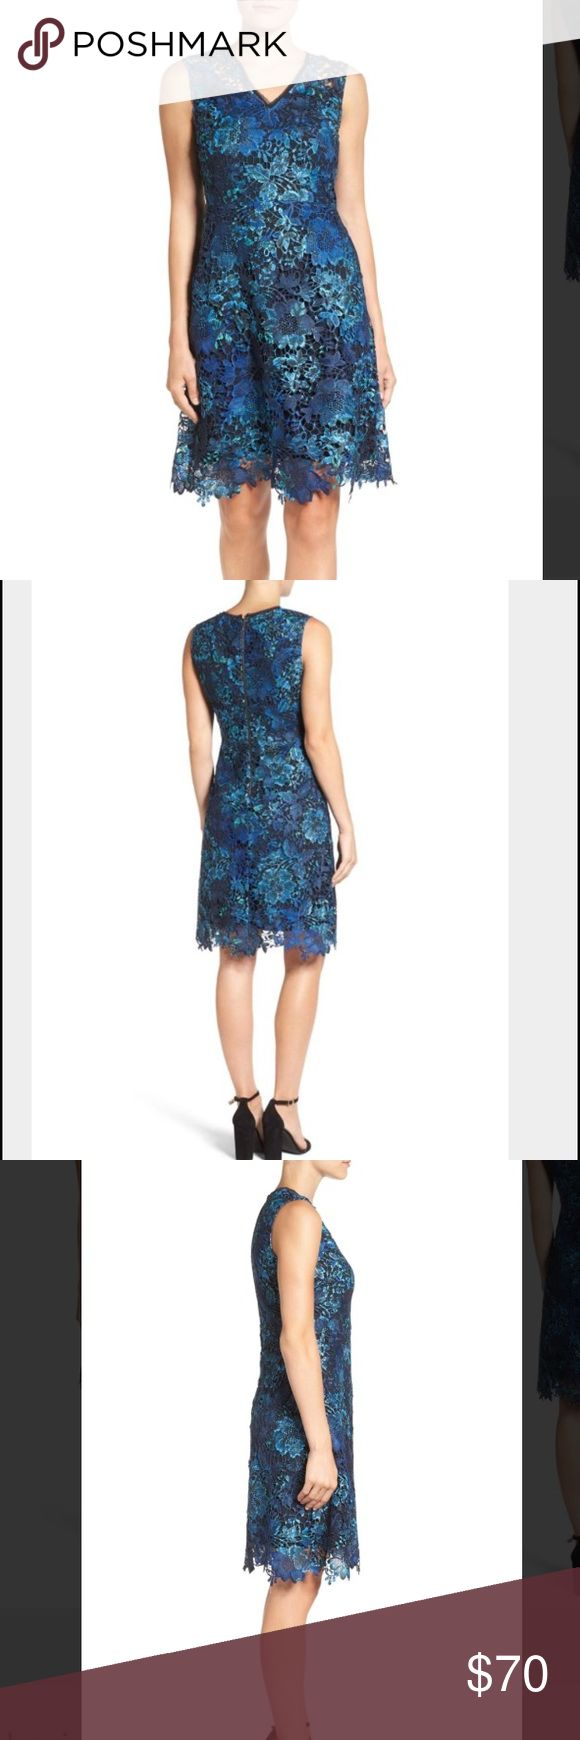 """🎀Sale🎀 T Tahari 